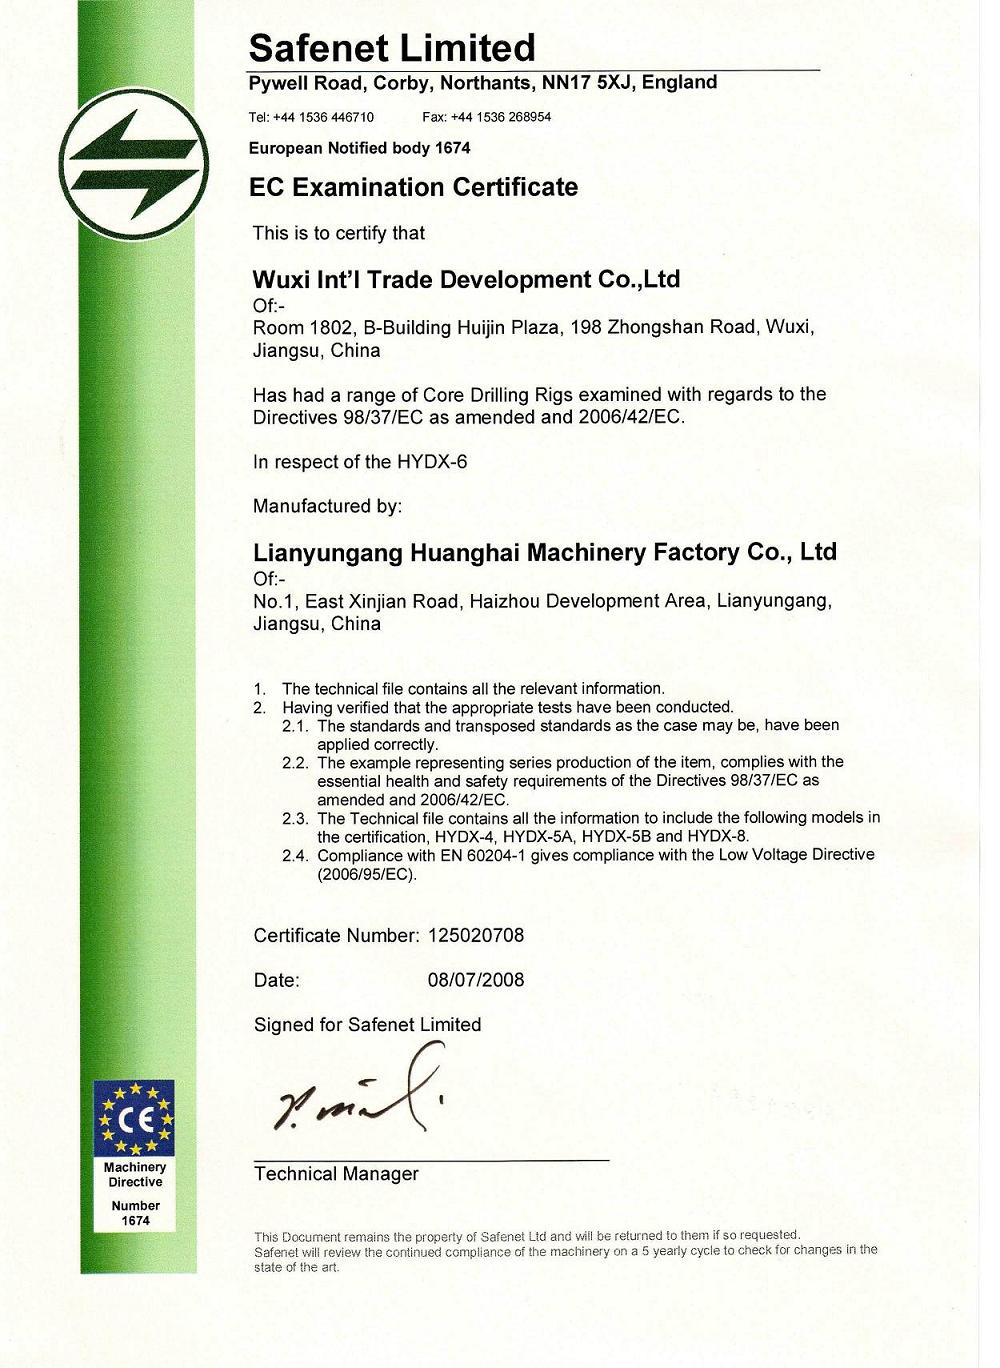 CE Examination Certificate for full hydraulic drilling rigs